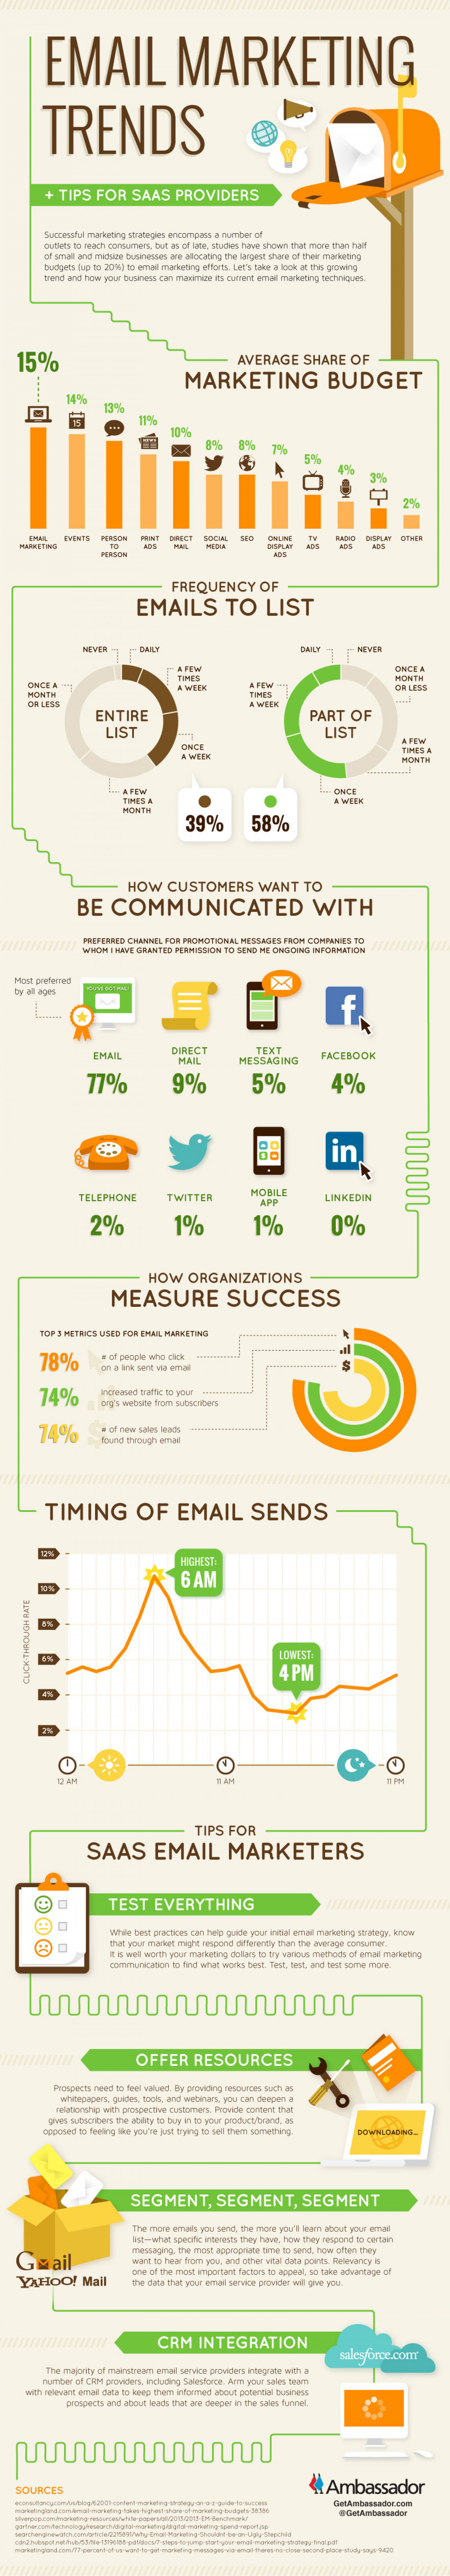 Email Marketing Trends Infographic